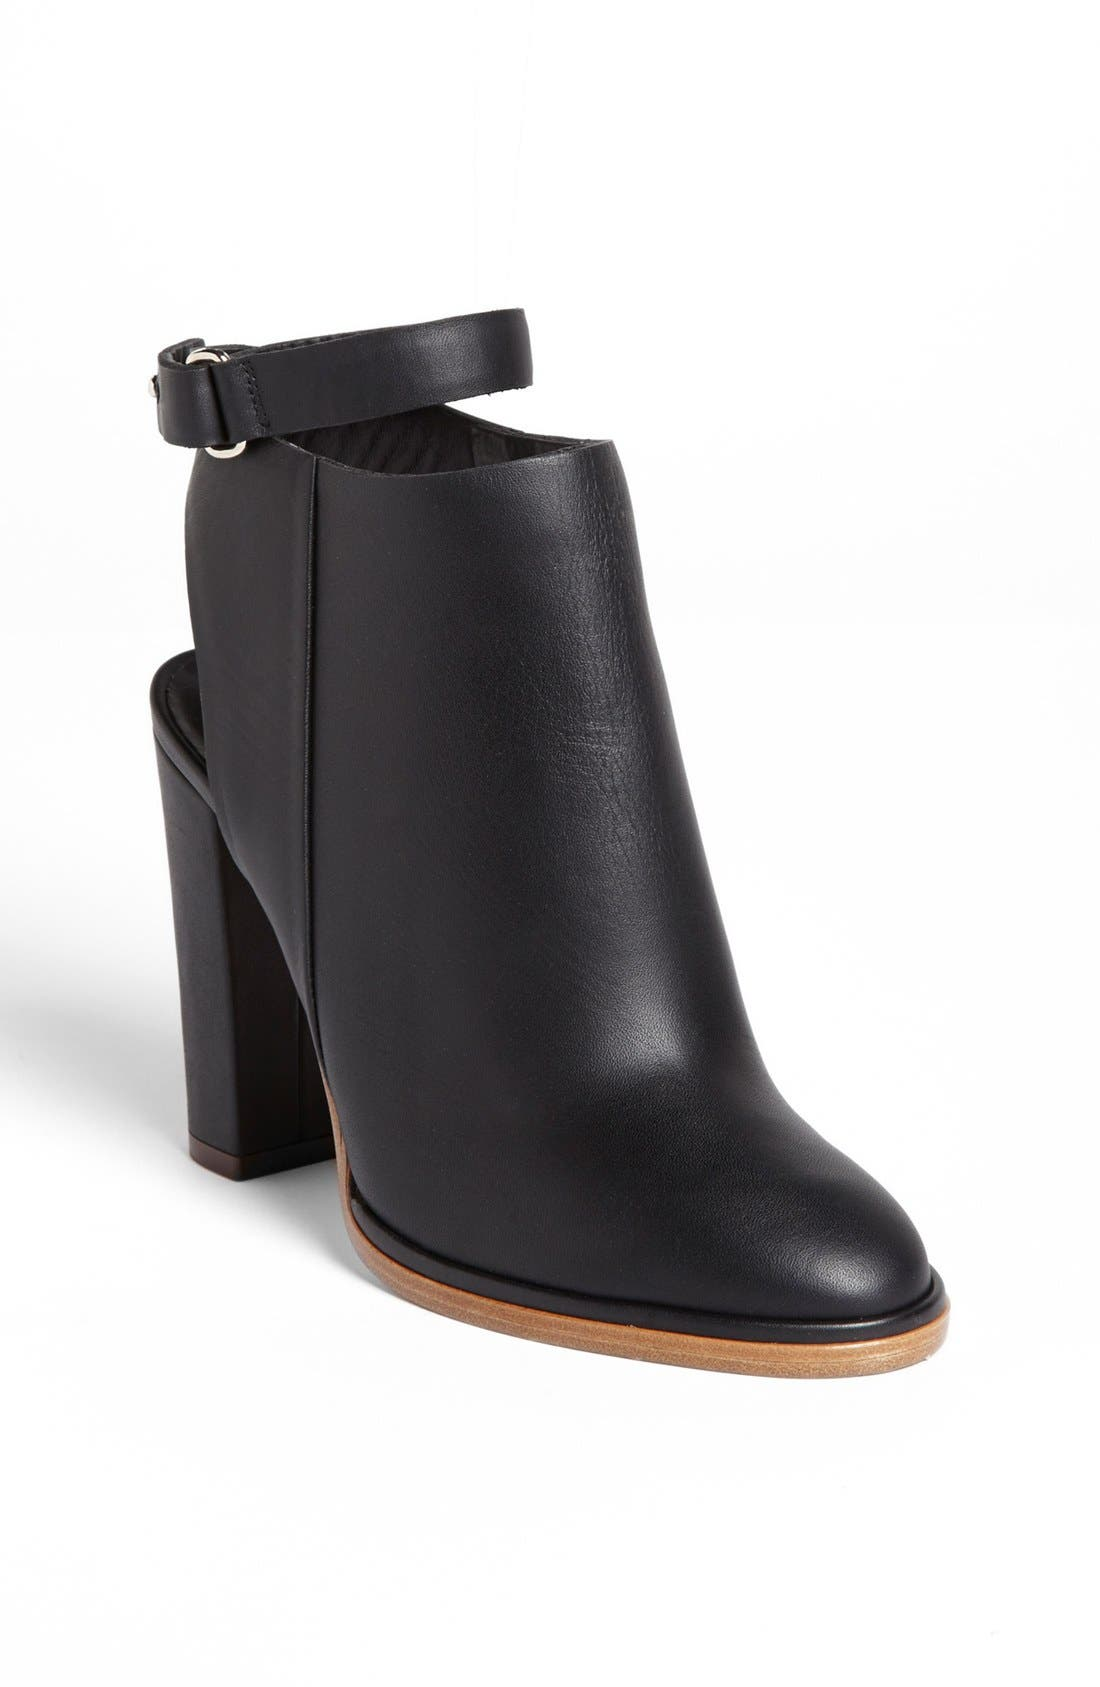 Alternate Image 1 Selected - Vince 'Joanna' Ankle Strap Bootie